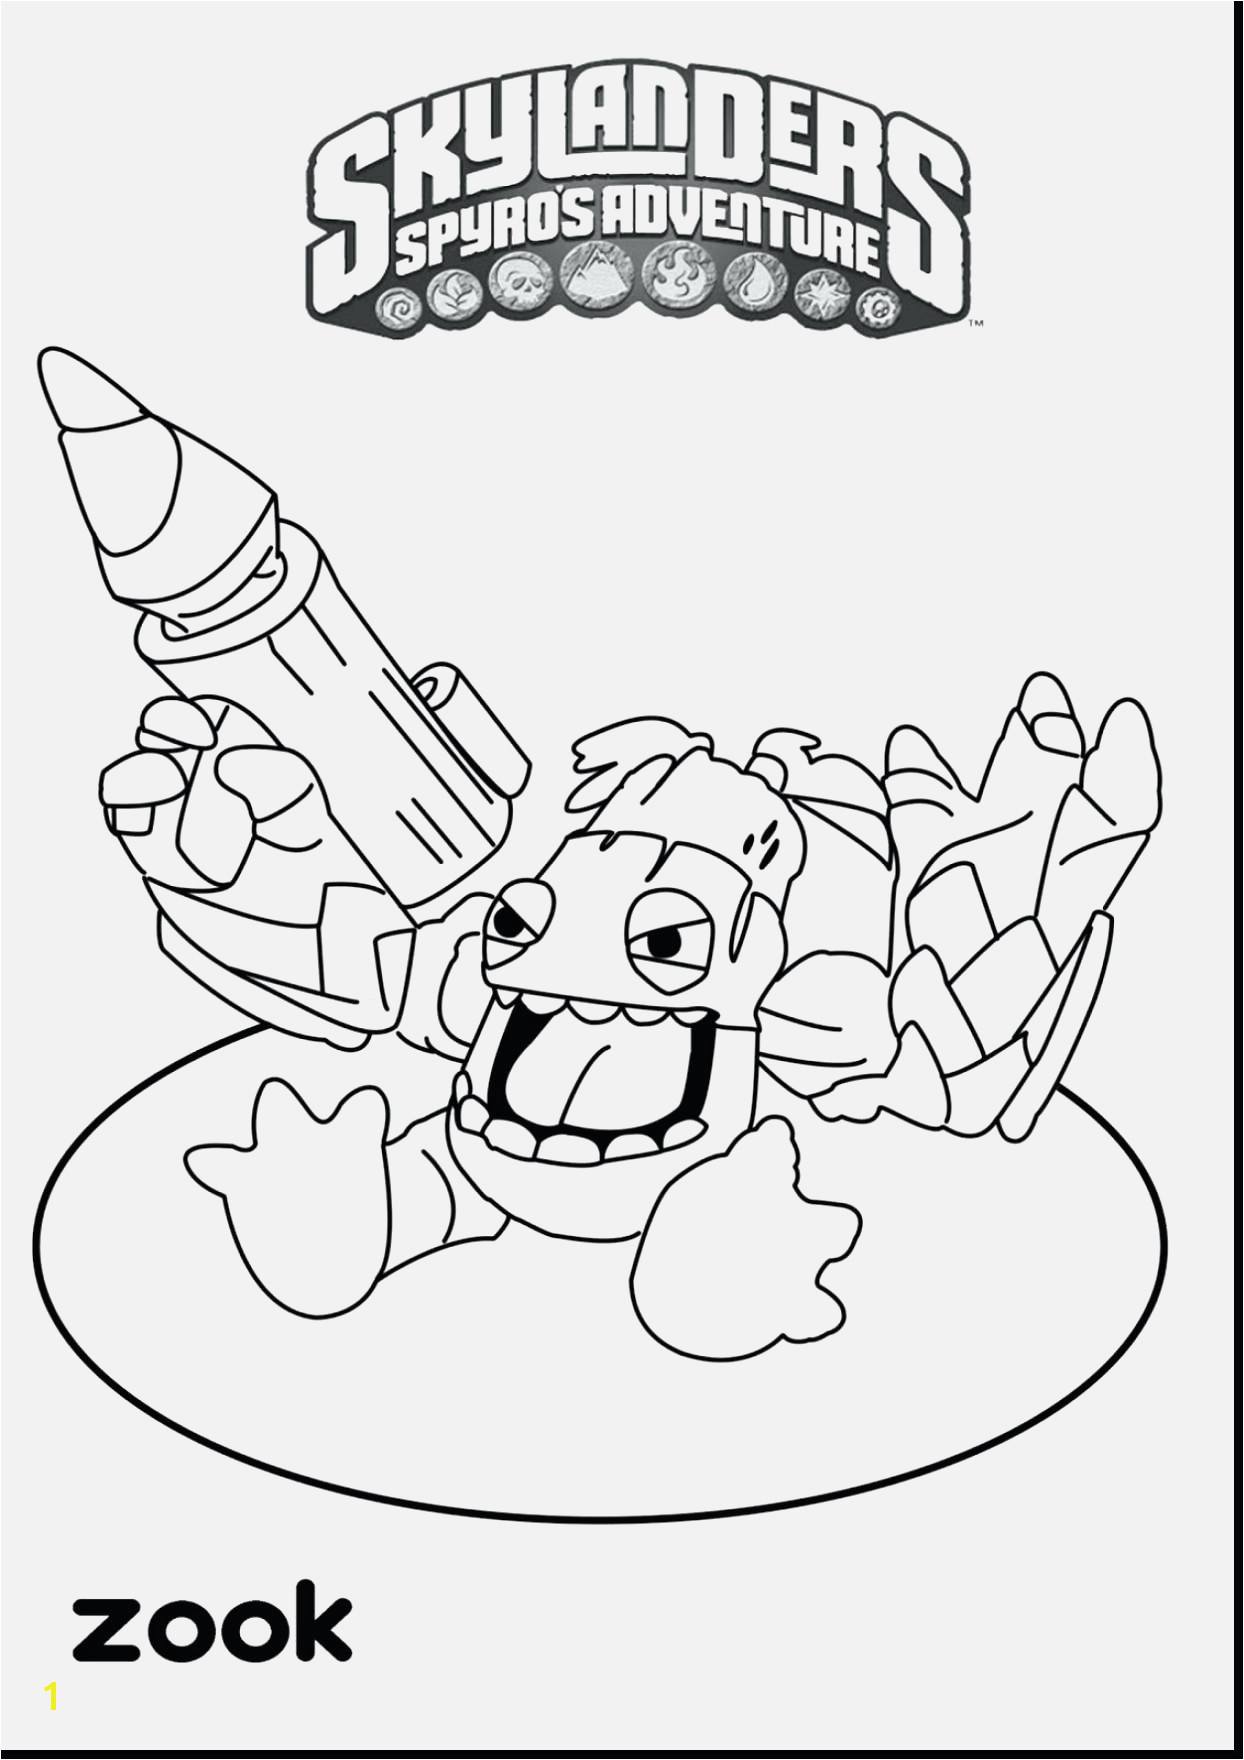 Thanksgiving Coloring Pages with Numbers Free Printable Thanksgiving Coloring Pages Best Ever Thanksgiving